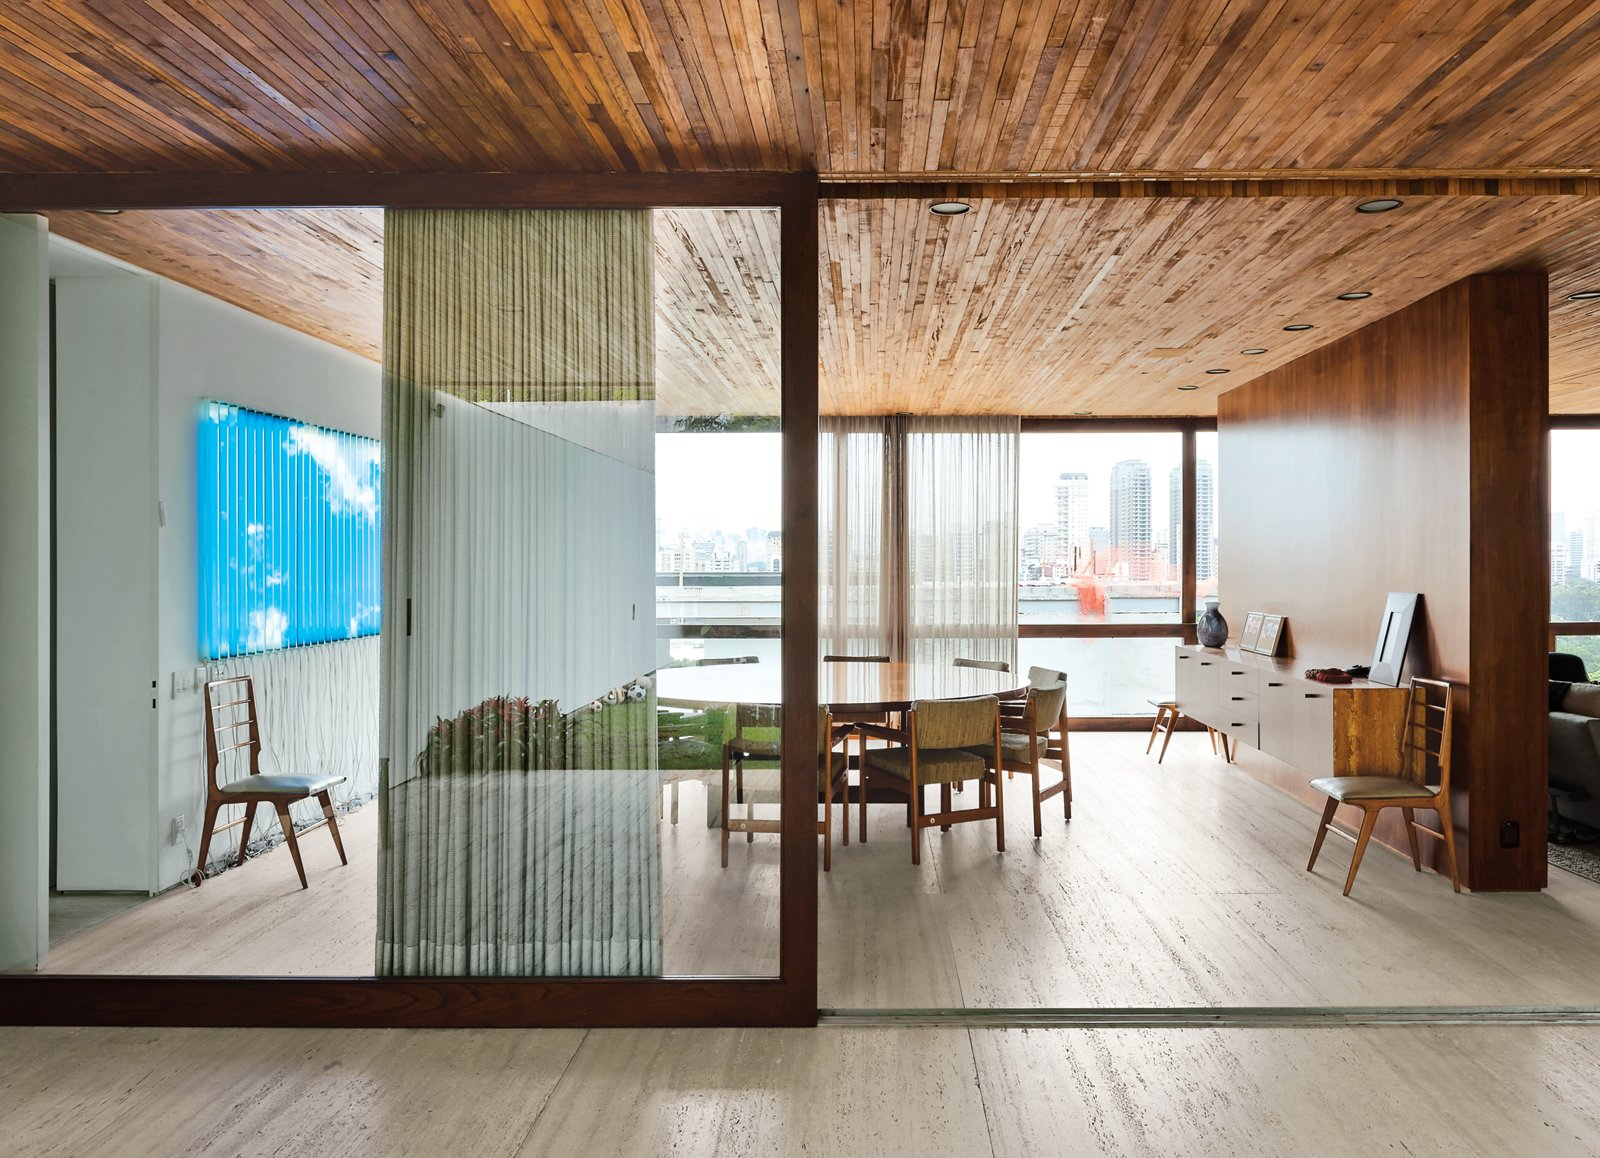 A wooden partition separates the dining room from the living room. The jacaranda table is a vintage find designed by Jorge Zalszupin for L'Atelier. The dining chairs are by the Brazilian designer Sergio Rodrigues and architect Isay Weinfeld designed the sideboard. The fluorescent lamp sculpture on the wall is Luz Natural by Eduardo Coimbra.  Latin America's Best Modern Homes by Kelsey Keith from Blockbuster Movies Can't Compete with These Monumental Views